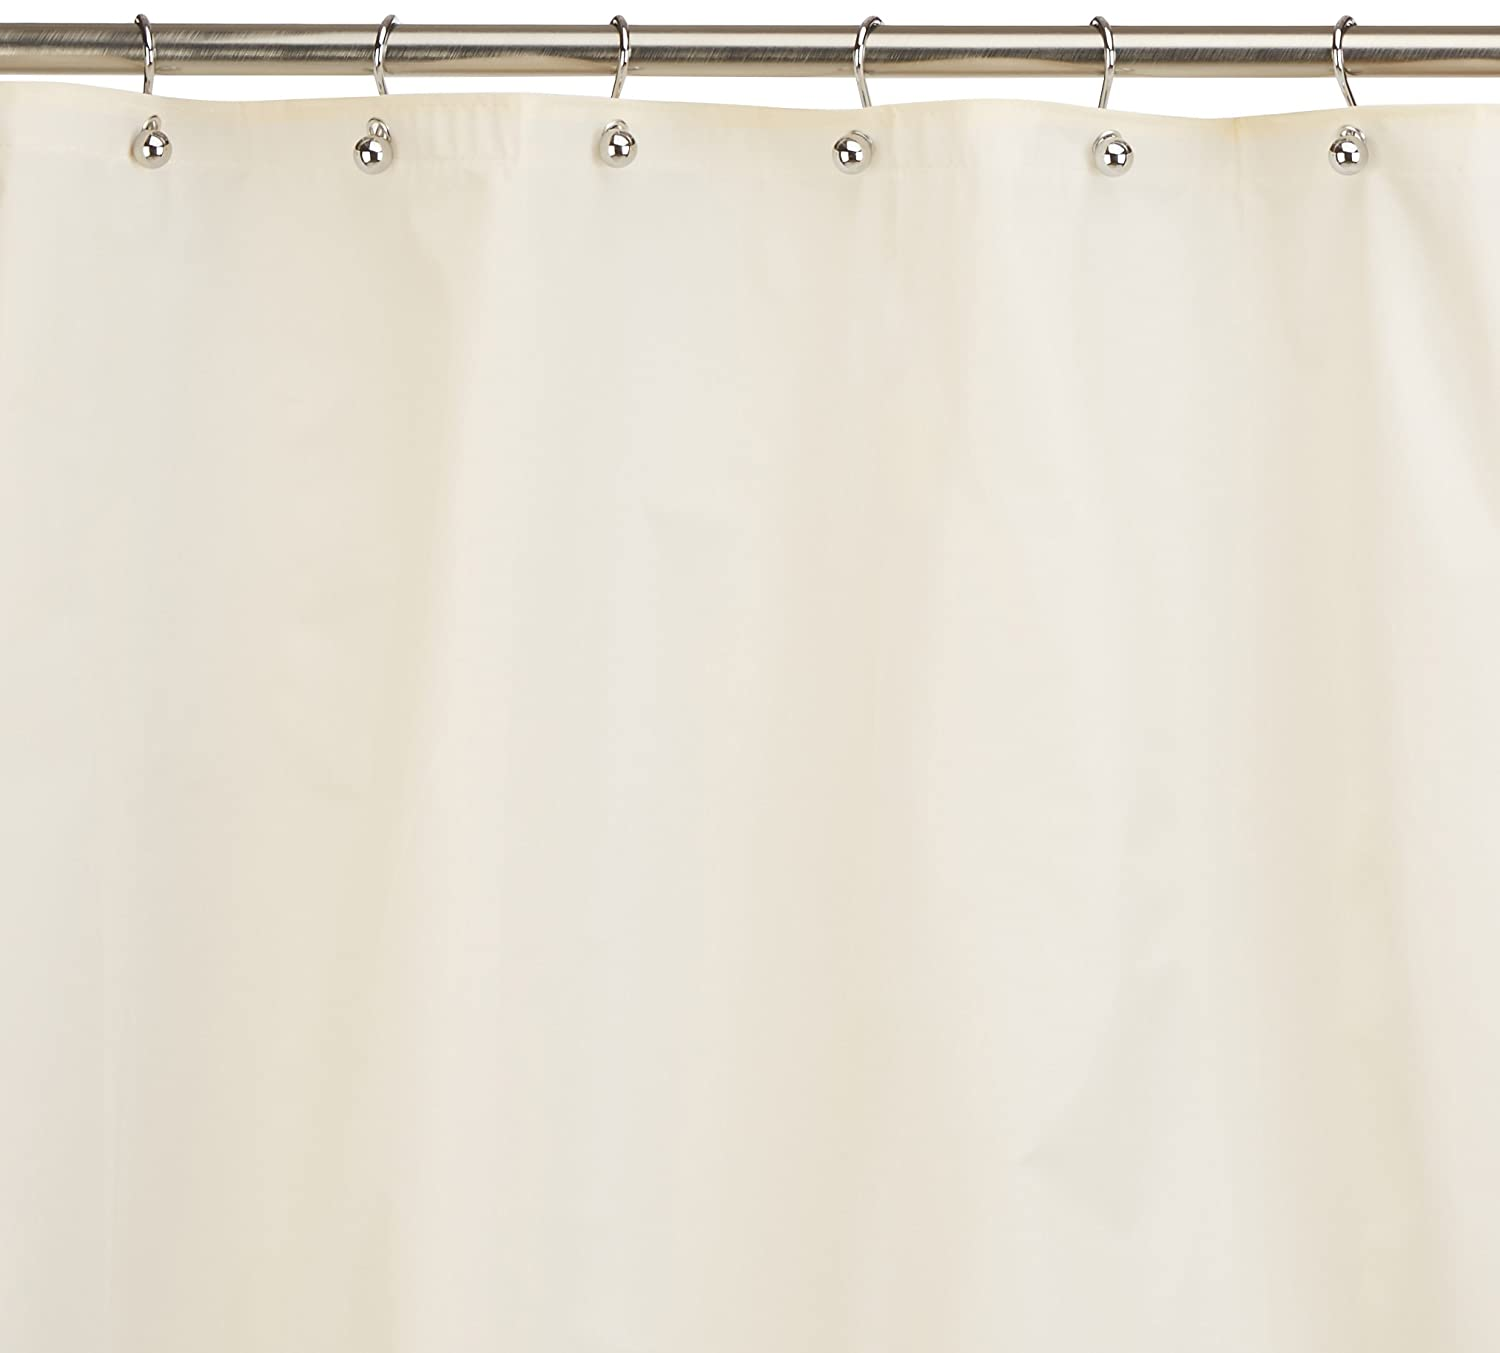 Carnation Home Fashions 10-Gauge PEVA 72 by 72-Inch Shower Curtain Liner, Standard, Ivory SCEVA-10/08